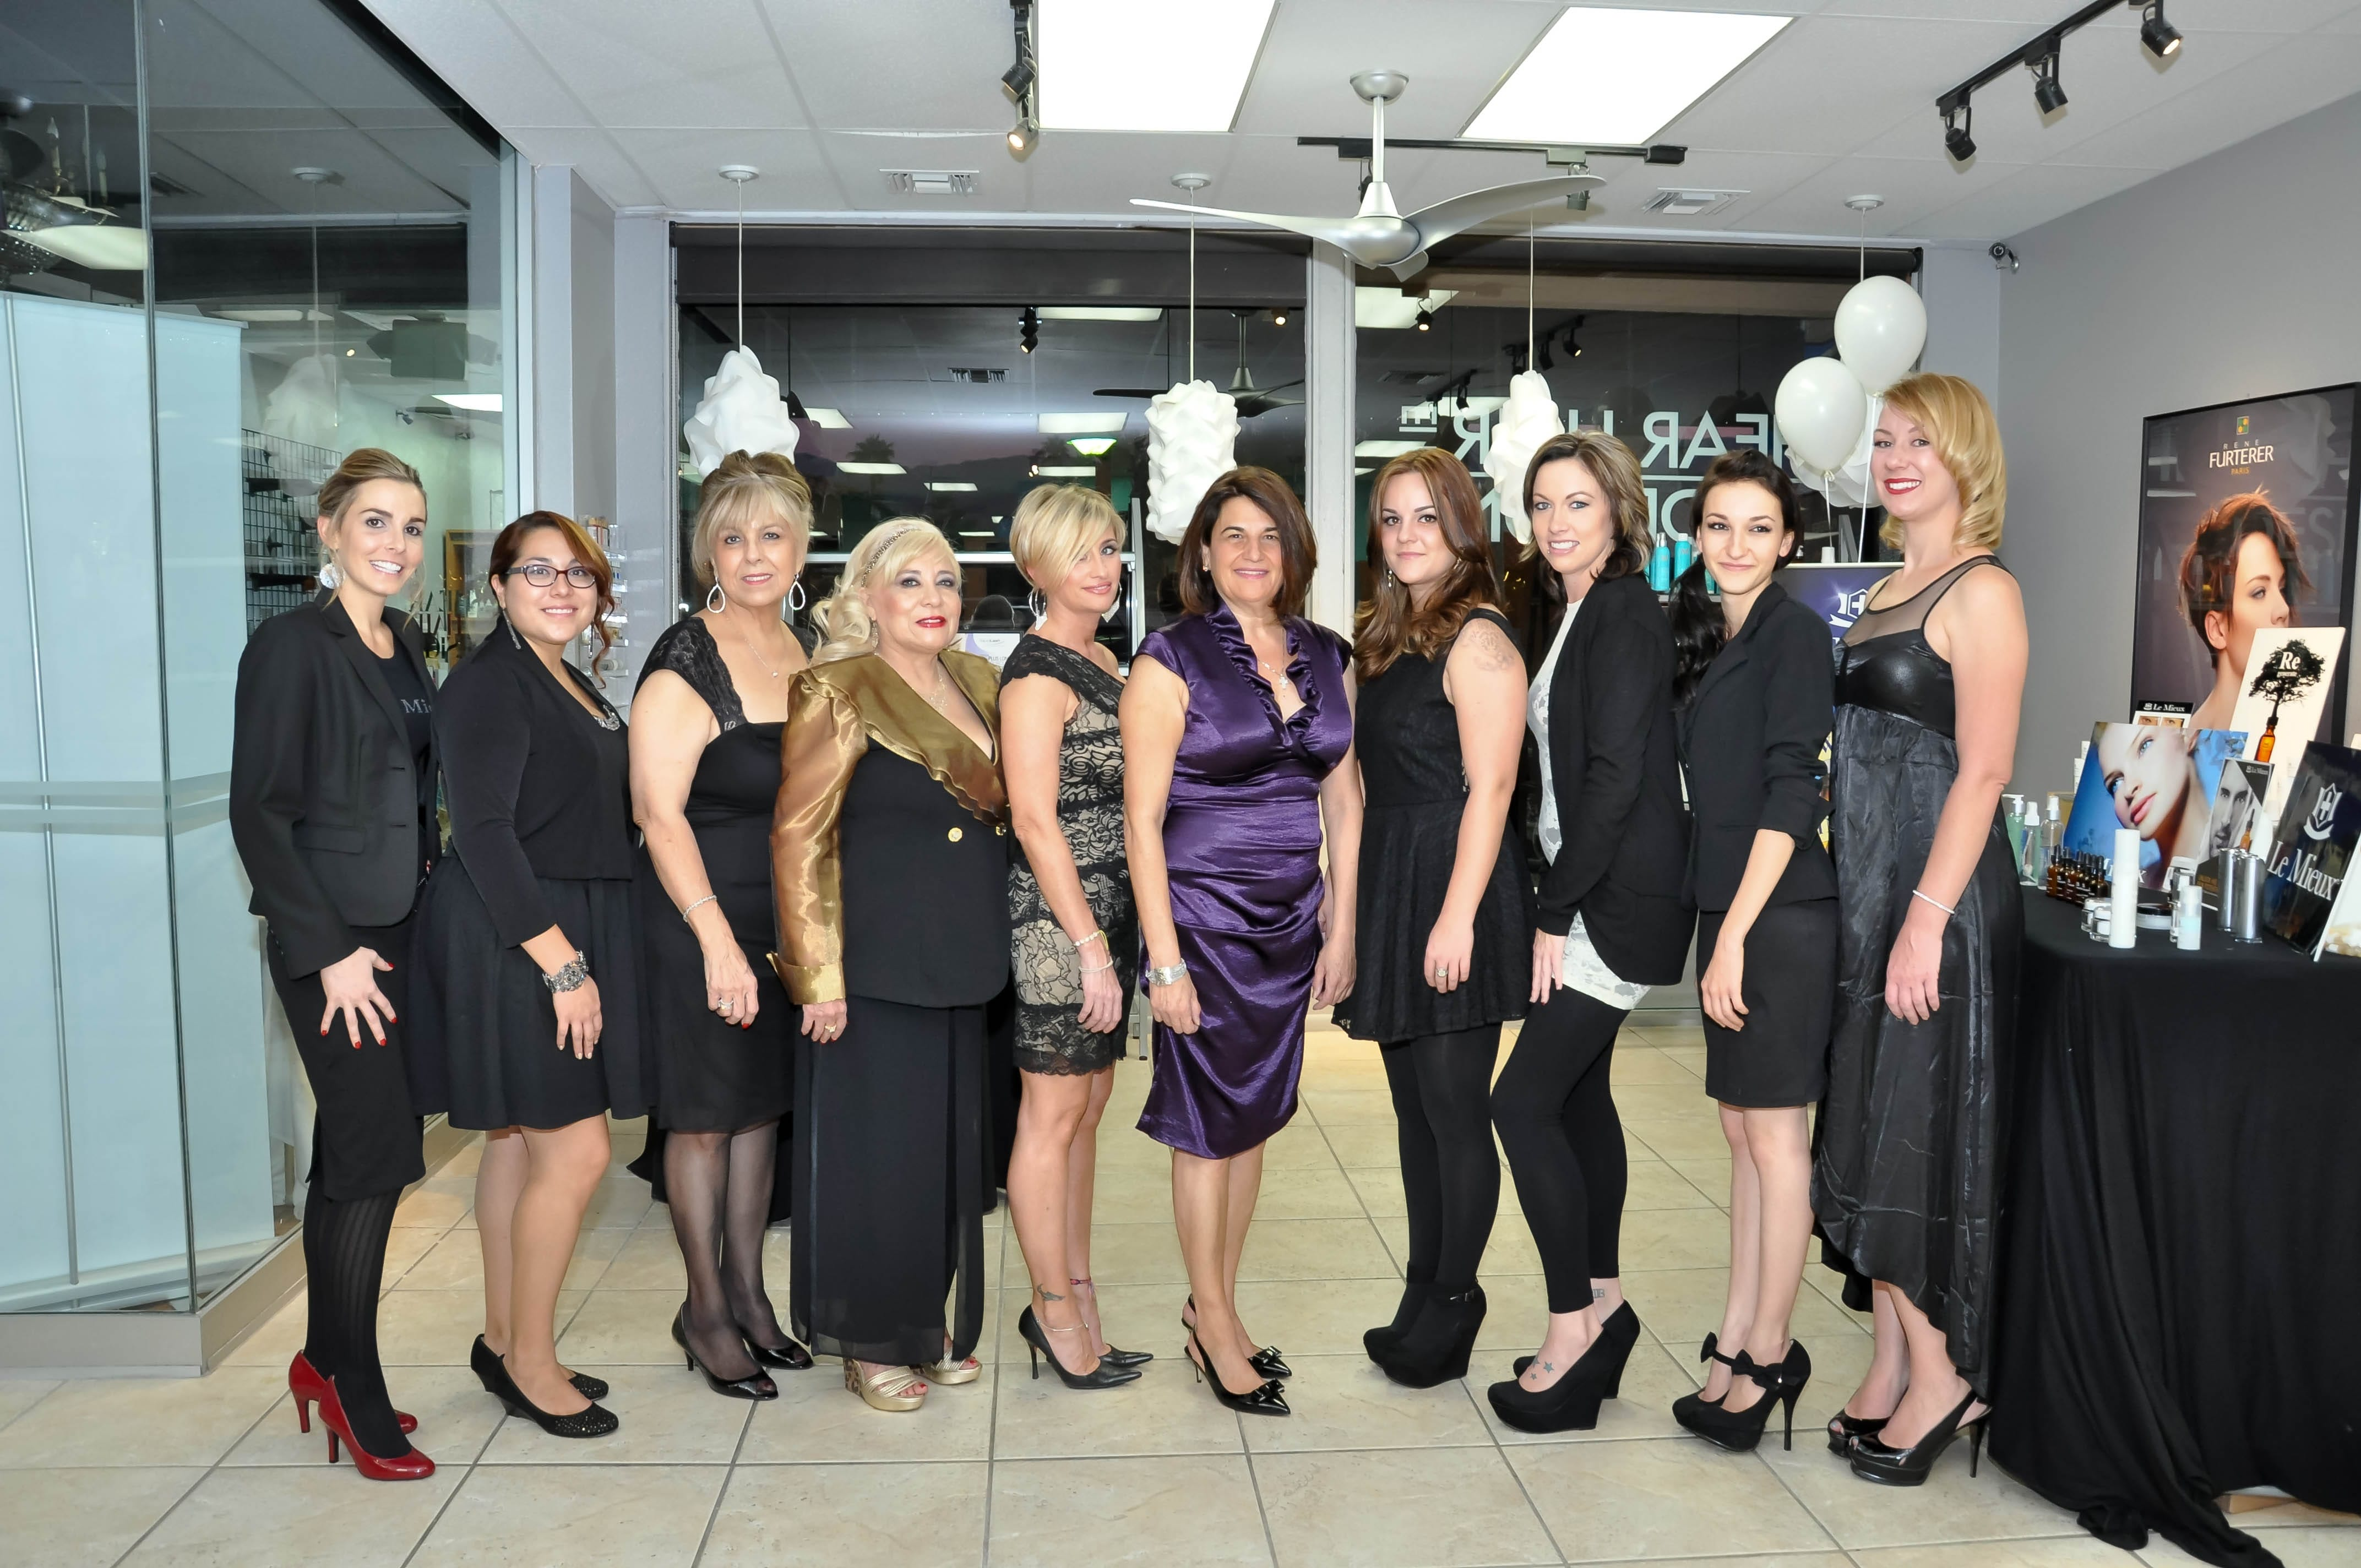 Shear Hair Design El Paseo Celebrates 35th Anniversary with An Evening of Luxury - Nov. 12, 2013